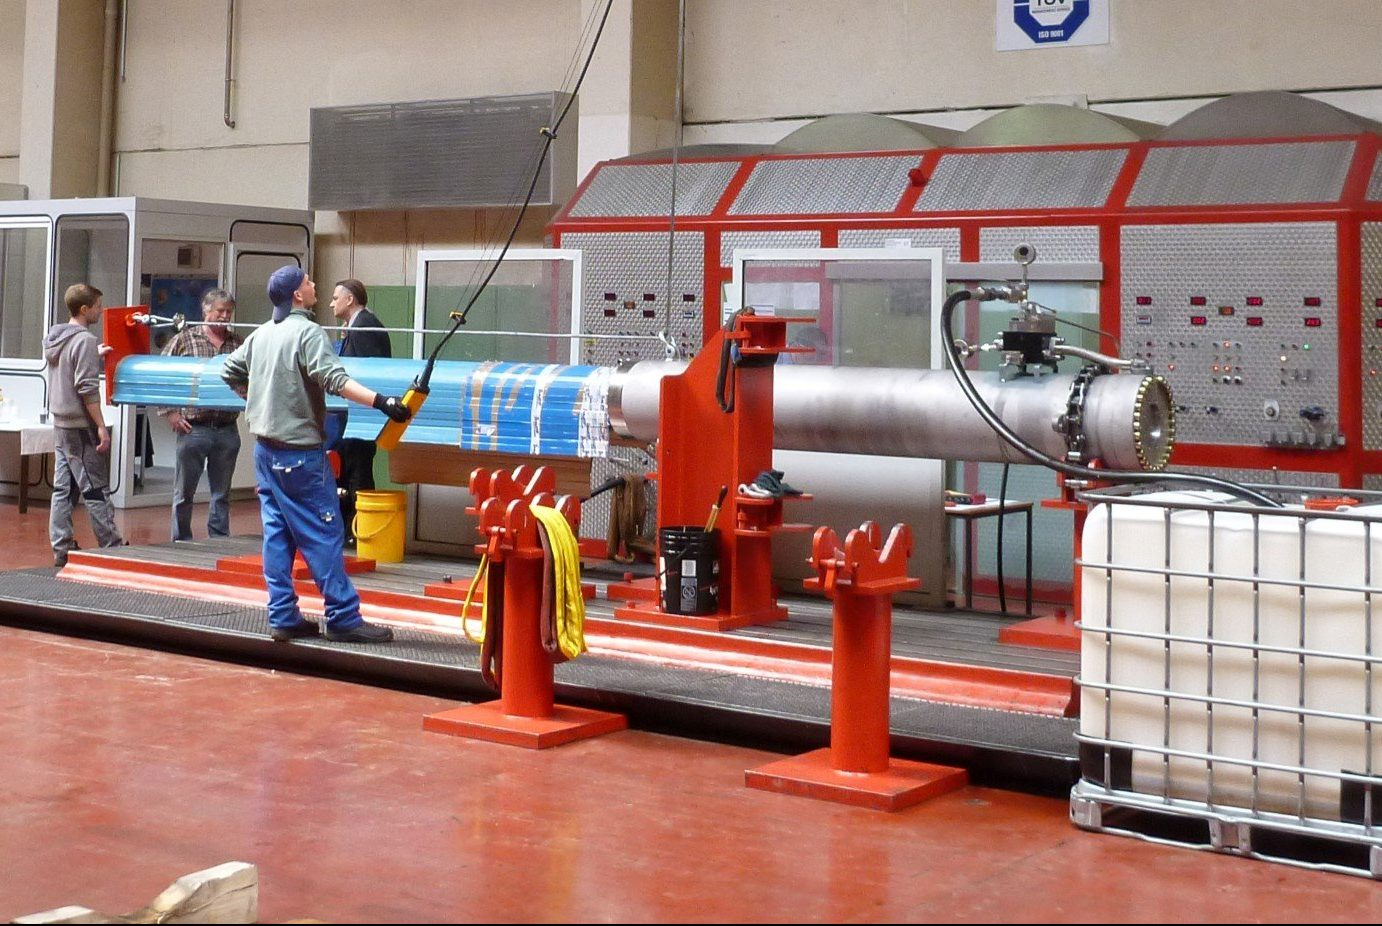 Hydraulic cylinder factory works test